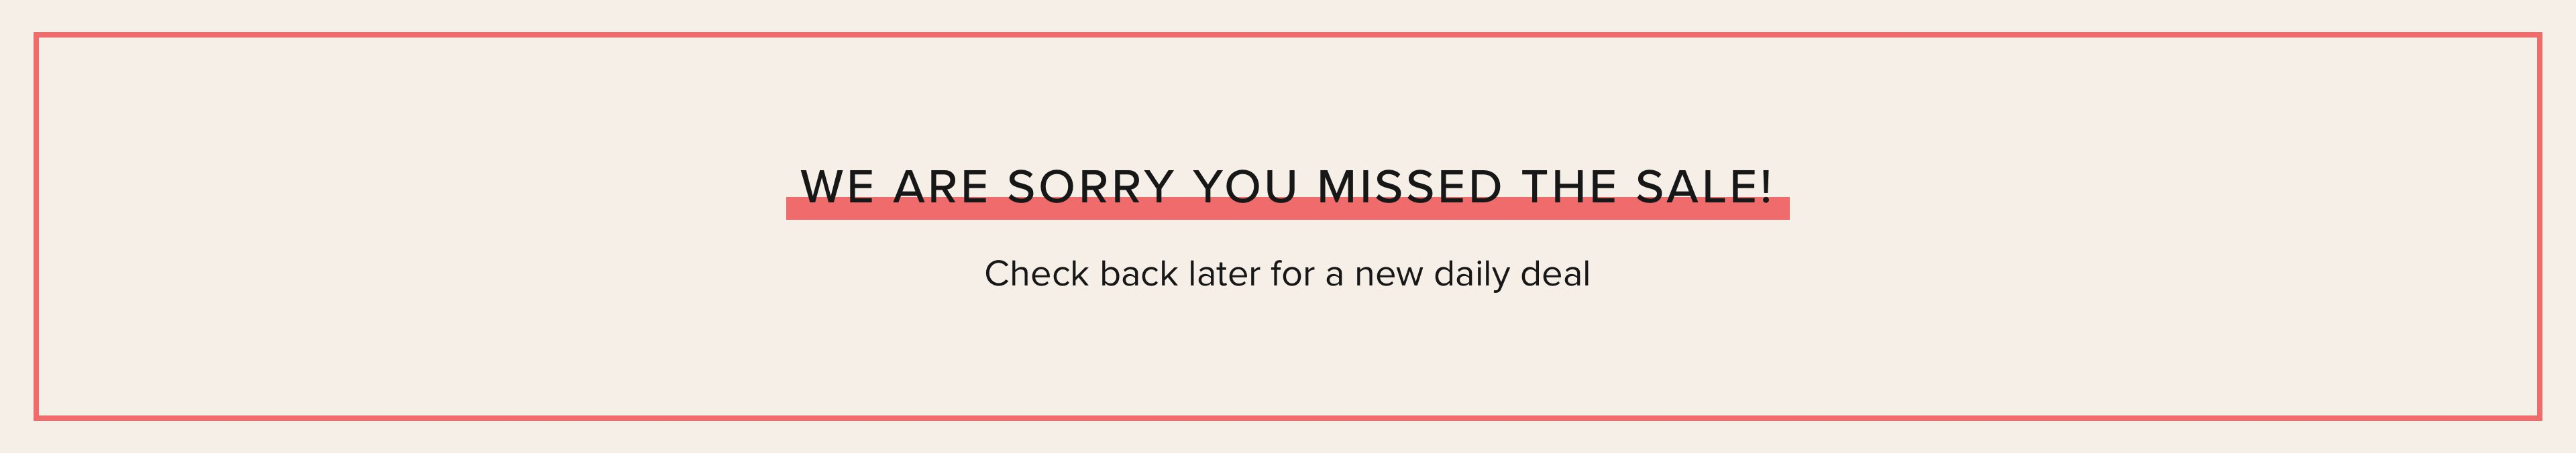 We are Sorry you Missed the Sale! Check back later for a new daily deal.